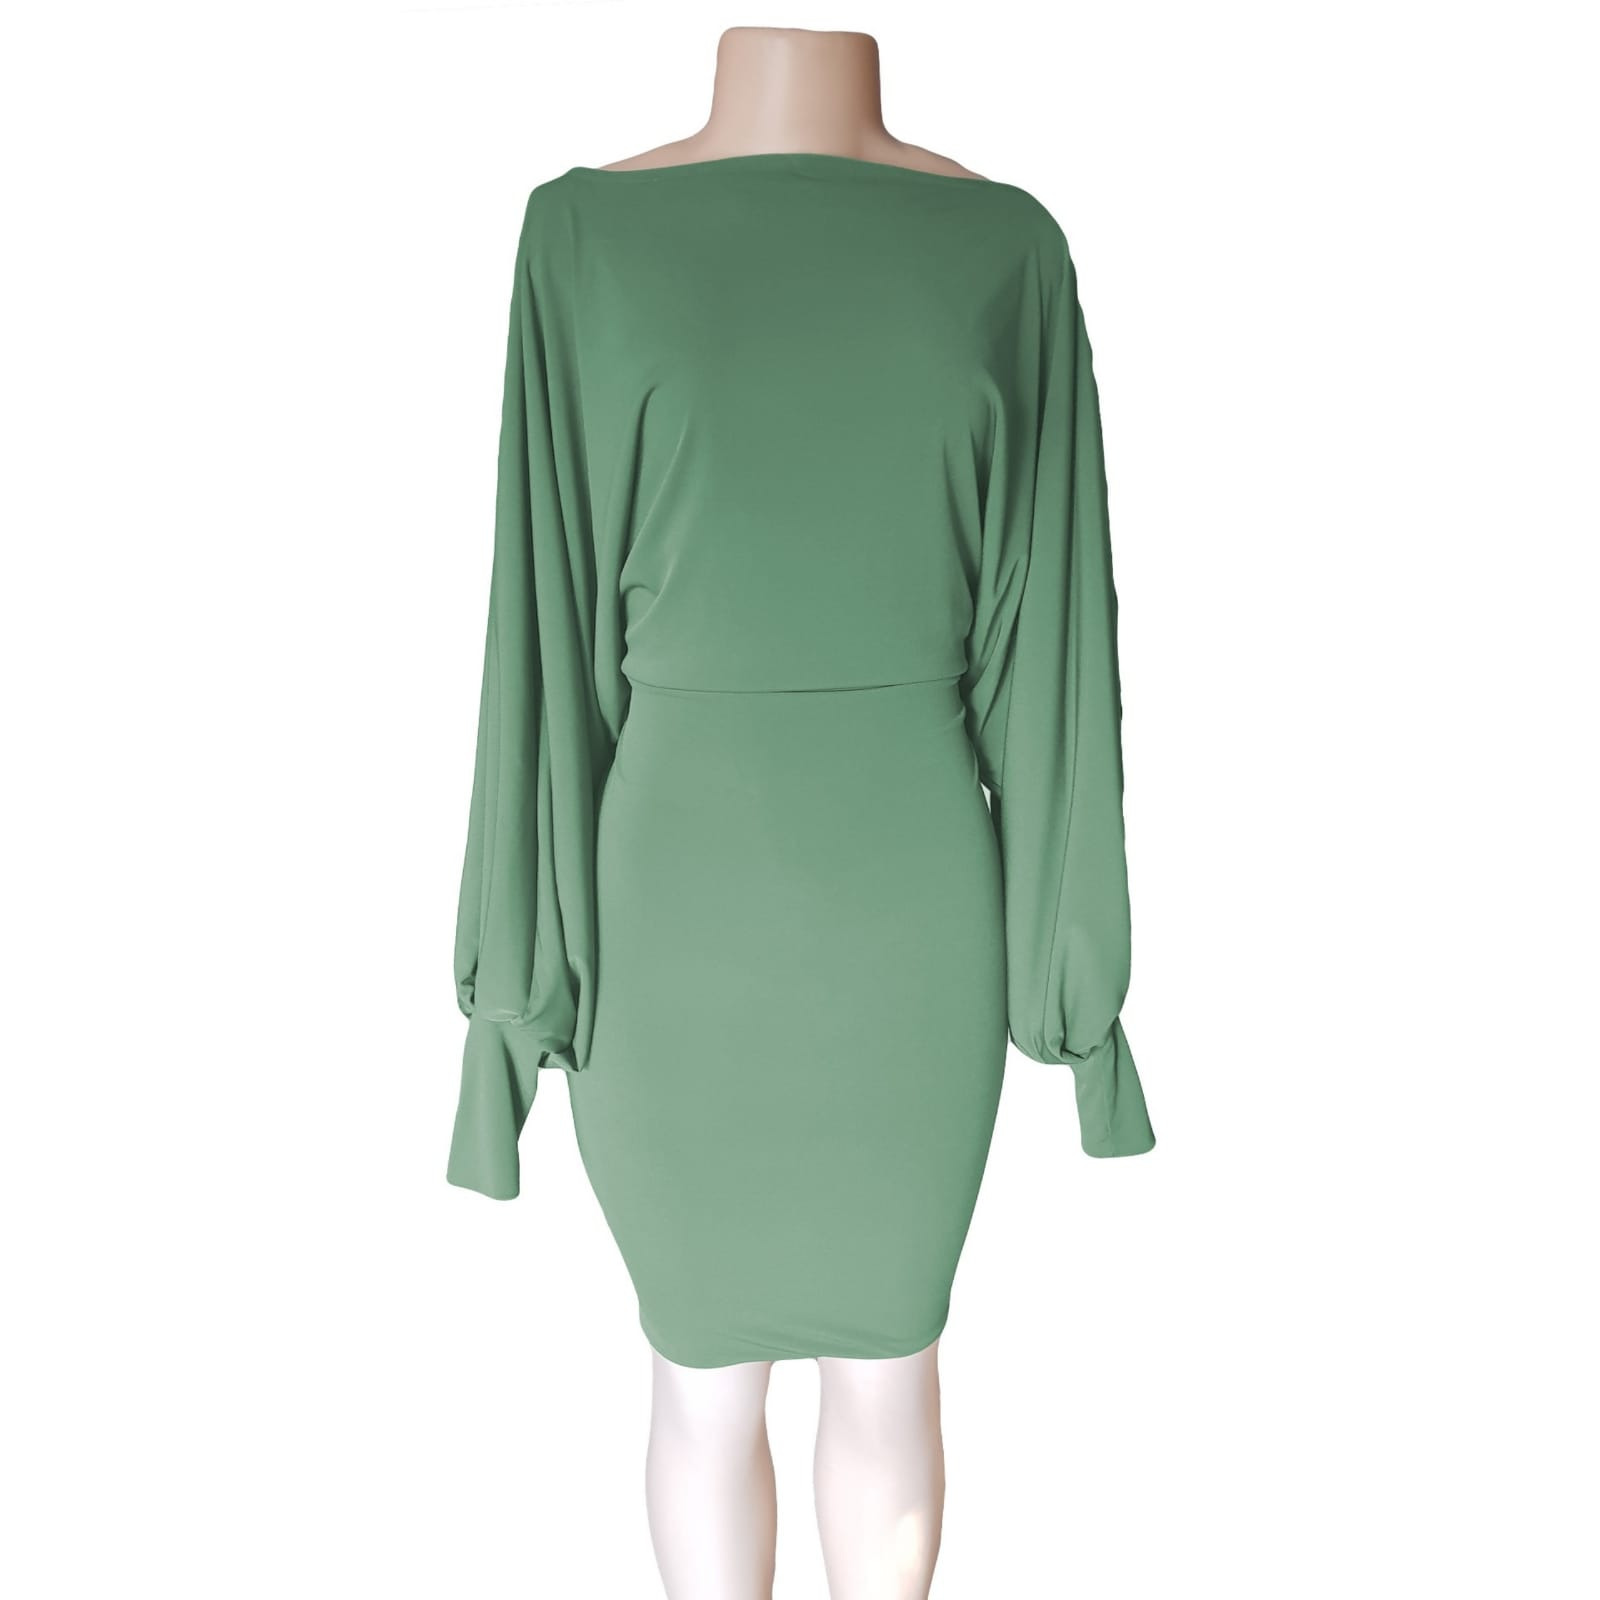 Green knee length smart casual dress 5 green knee length smart casual dress with long bounce sleeves and bodice with a fitted bottom skirt